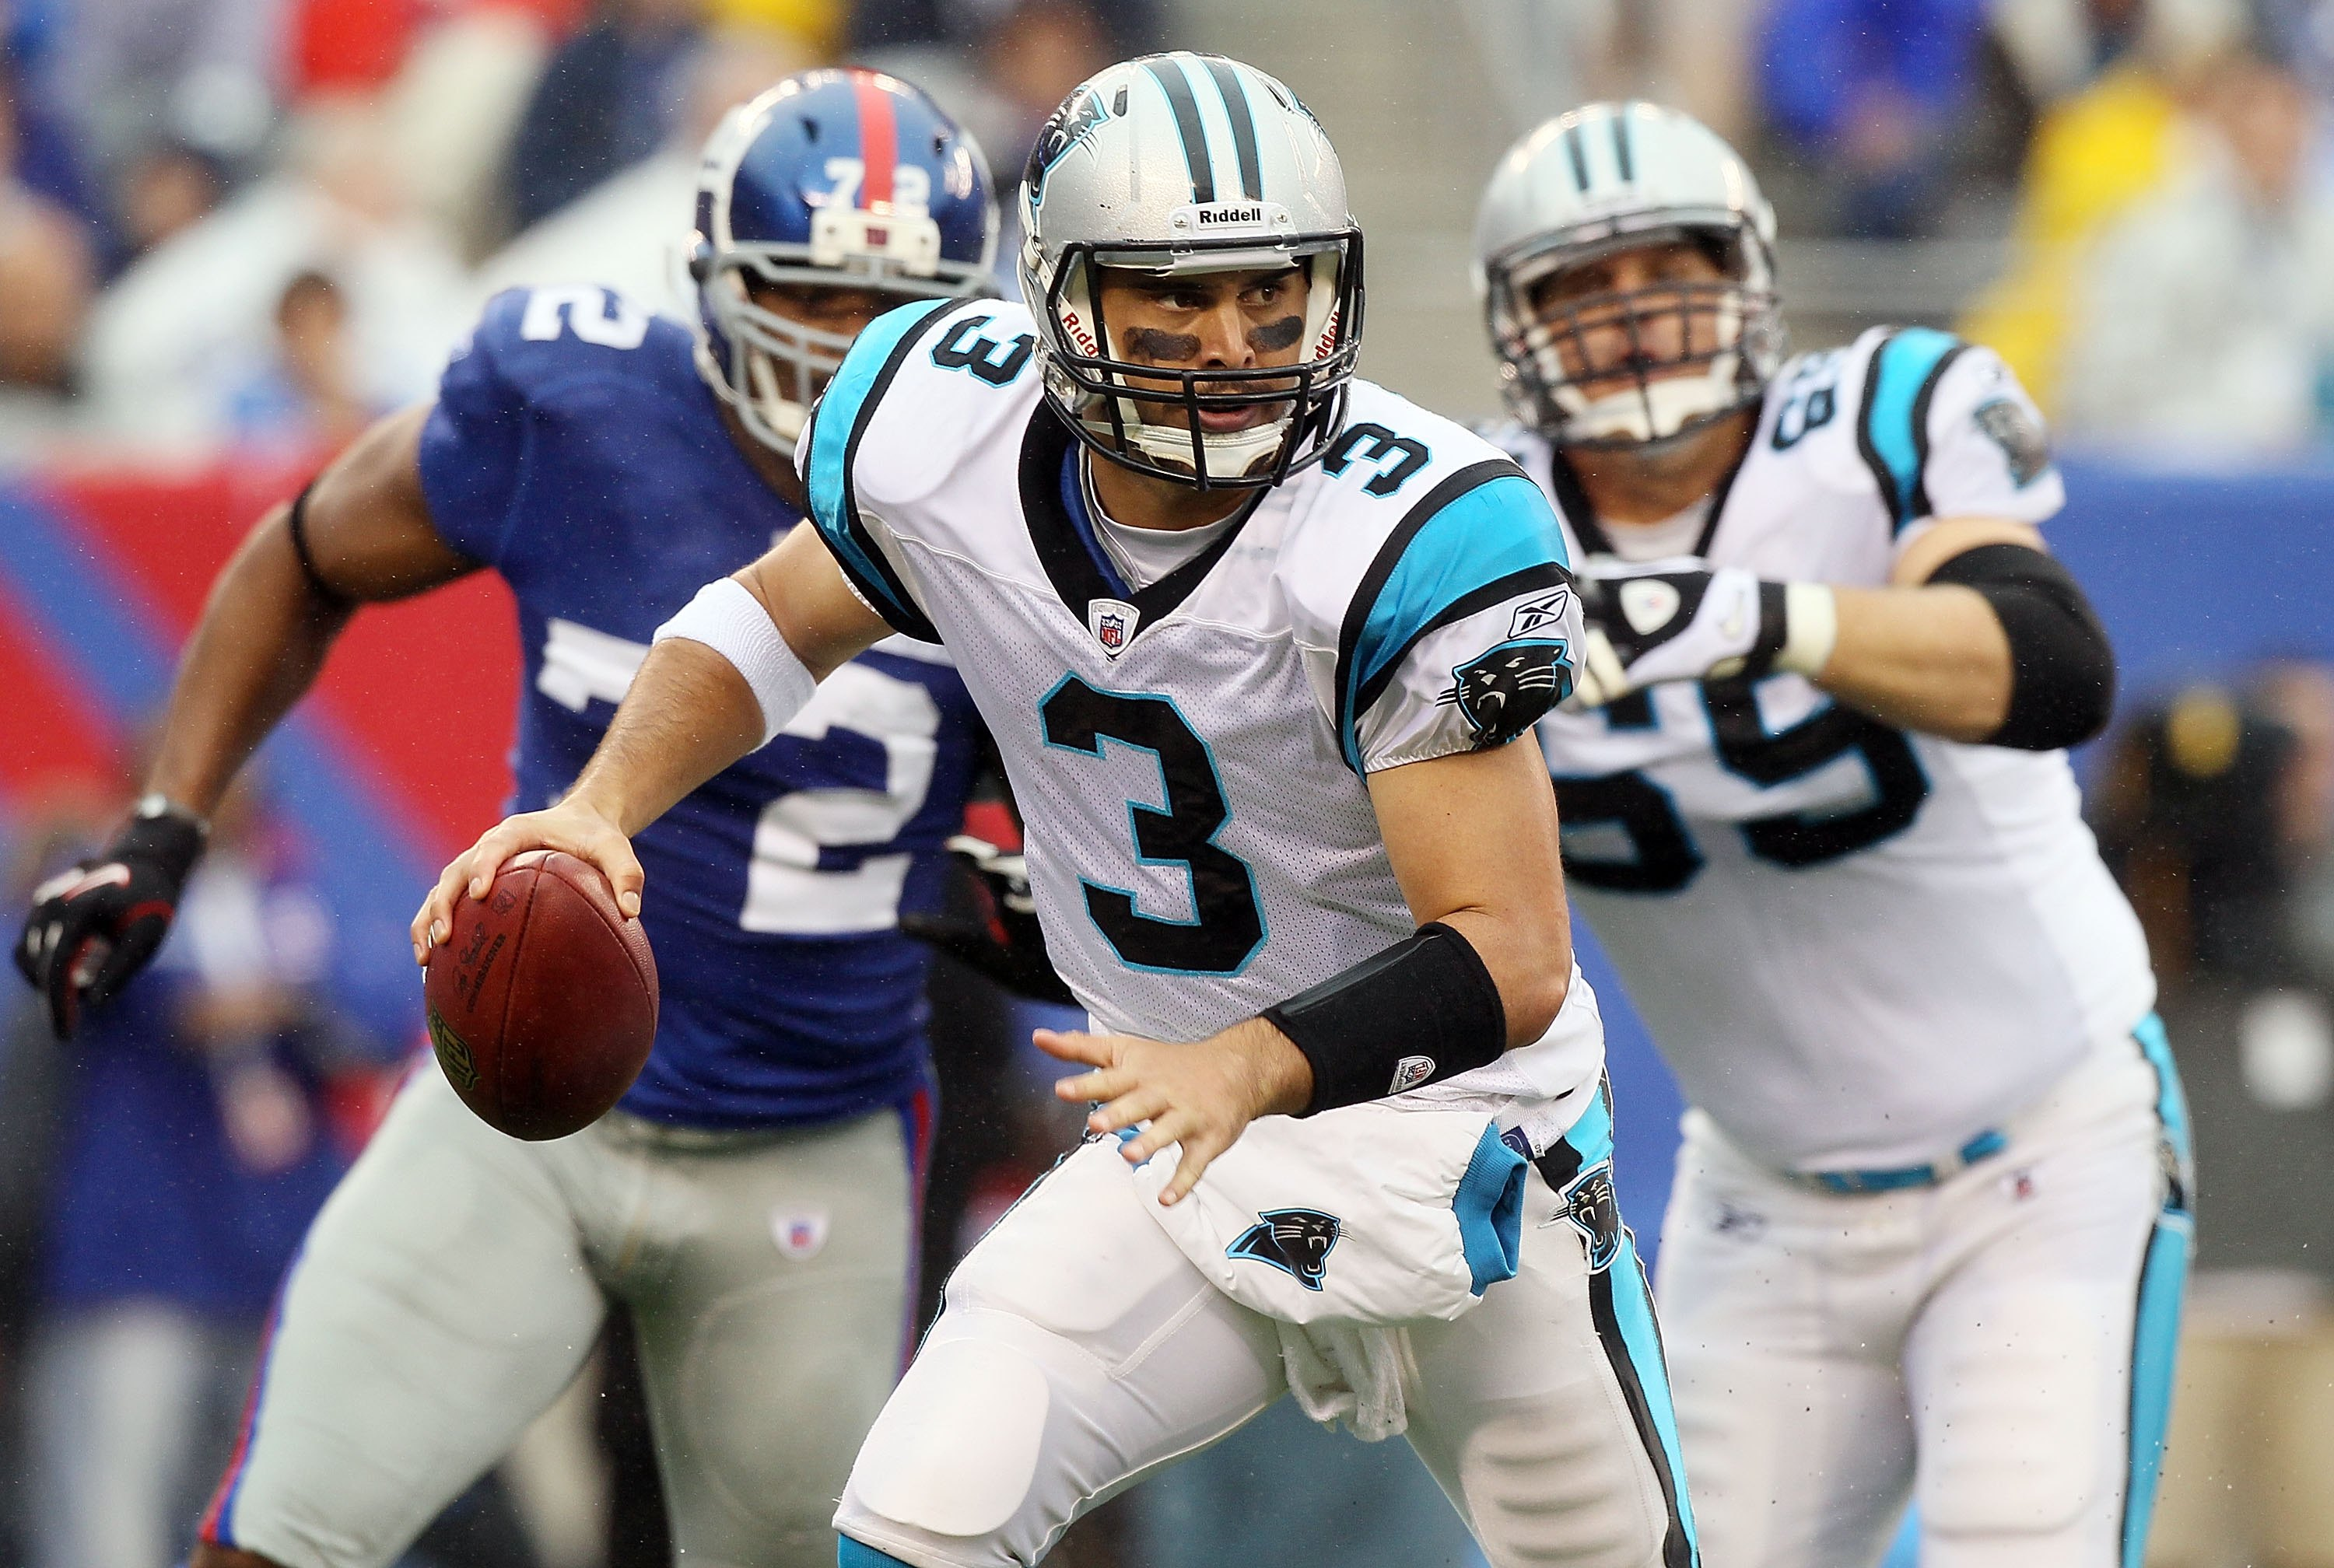 EAST RUTHERFORD, NJ - SEPTEMBER 12:  Matt Moore #3 of the Carolina Panthers scrambles against the New York Giants on September 12, 2010 at the New Meadowlands Stadium in East Rutherford, New Jersey.  (Photo by Jim McIsaac/Getty Images)